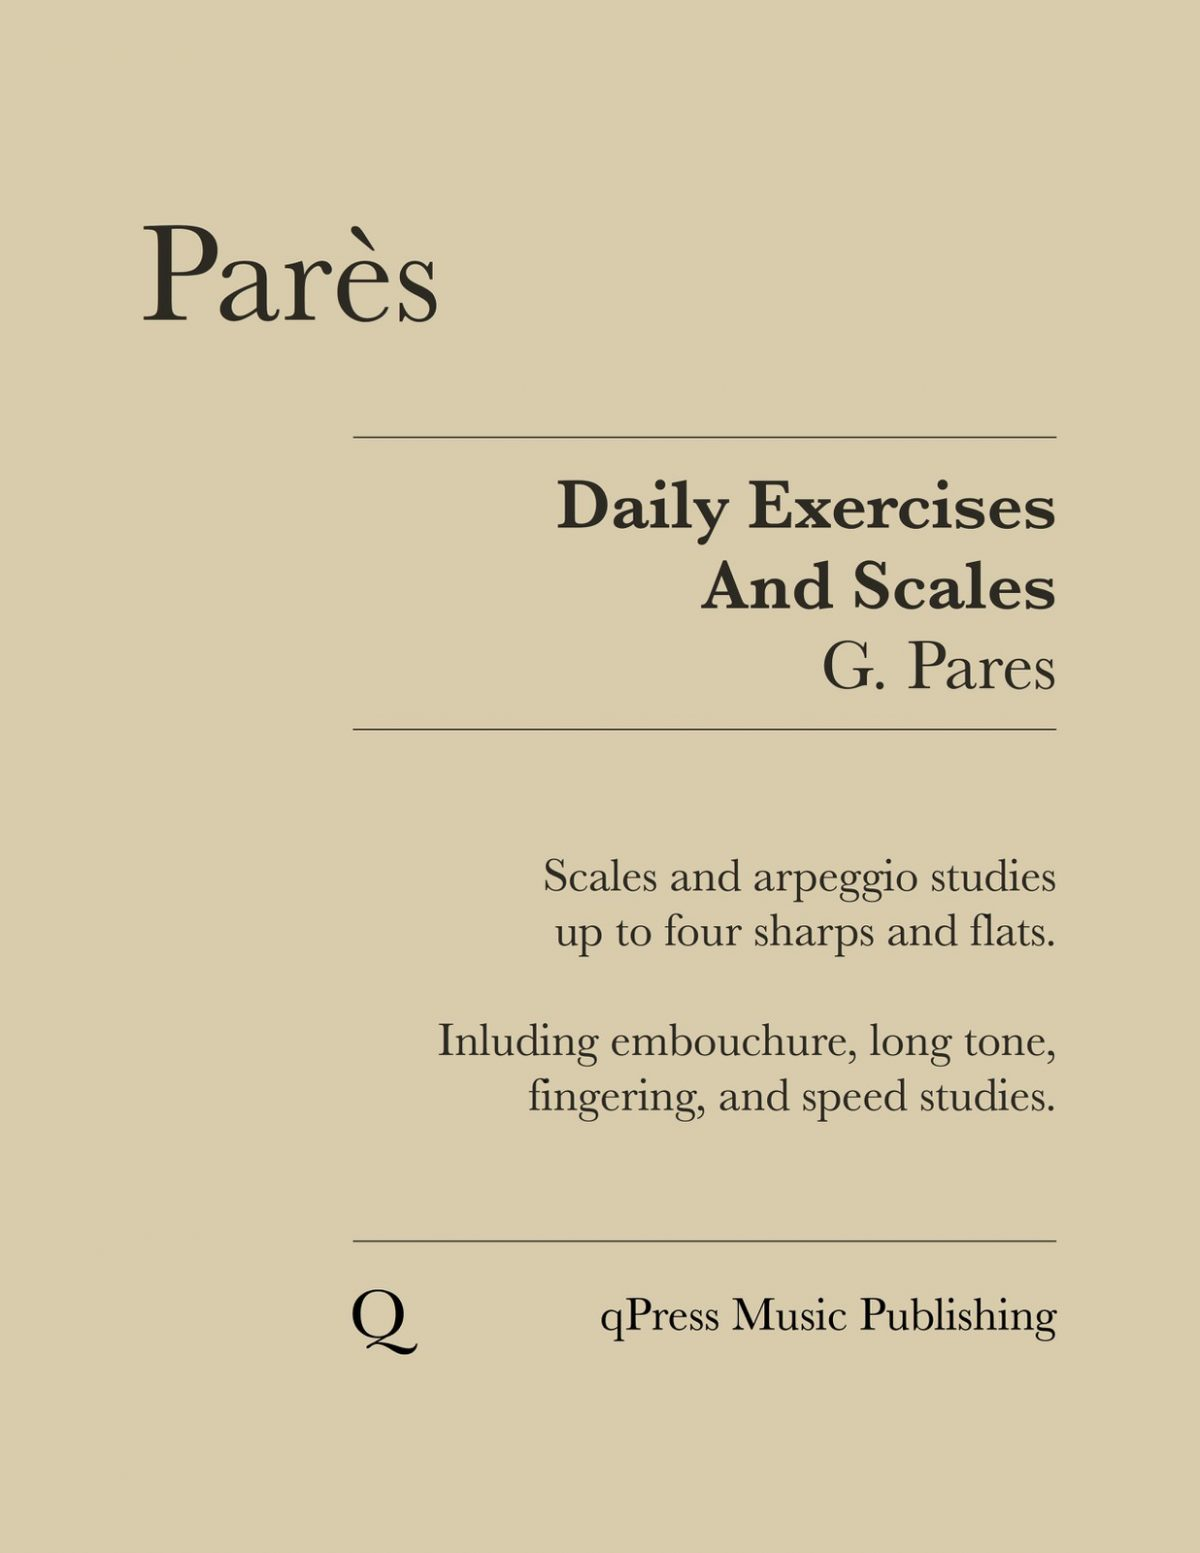 Pares, Daily Exercises and Scales-p01